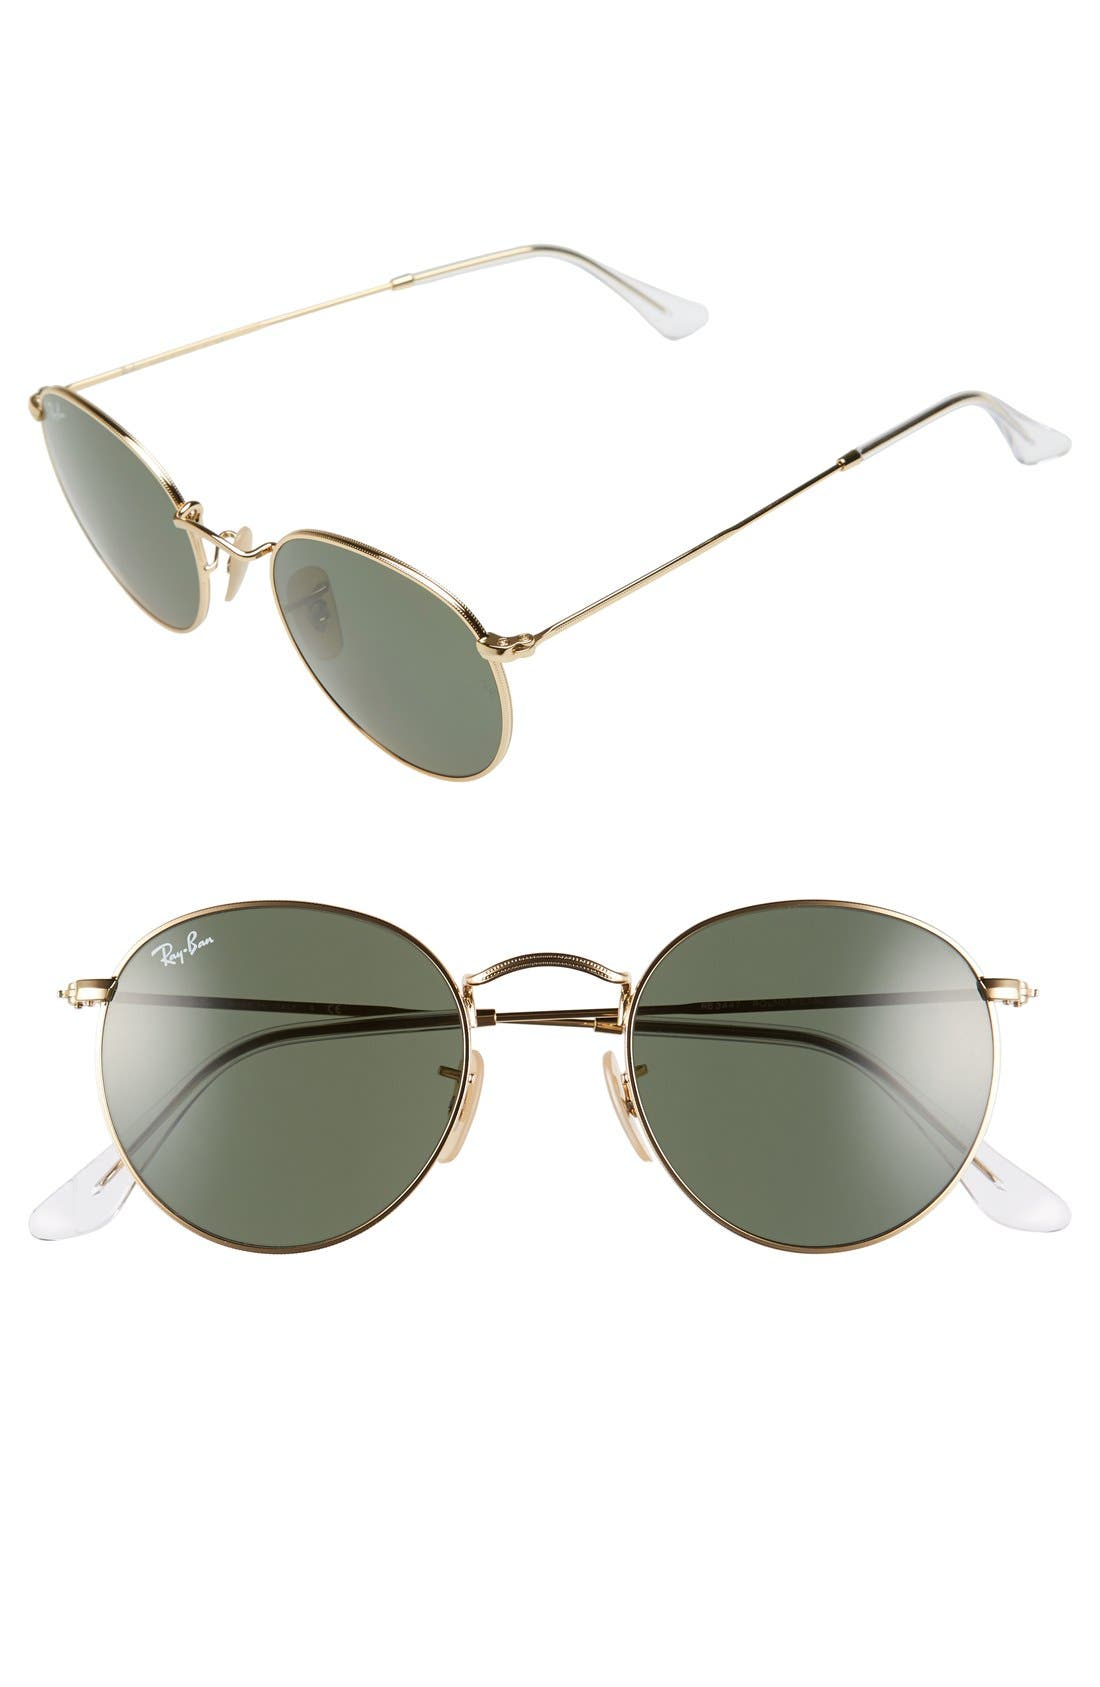 50mm Round Sunglasses,                         Main,                         color, Gold/ Green